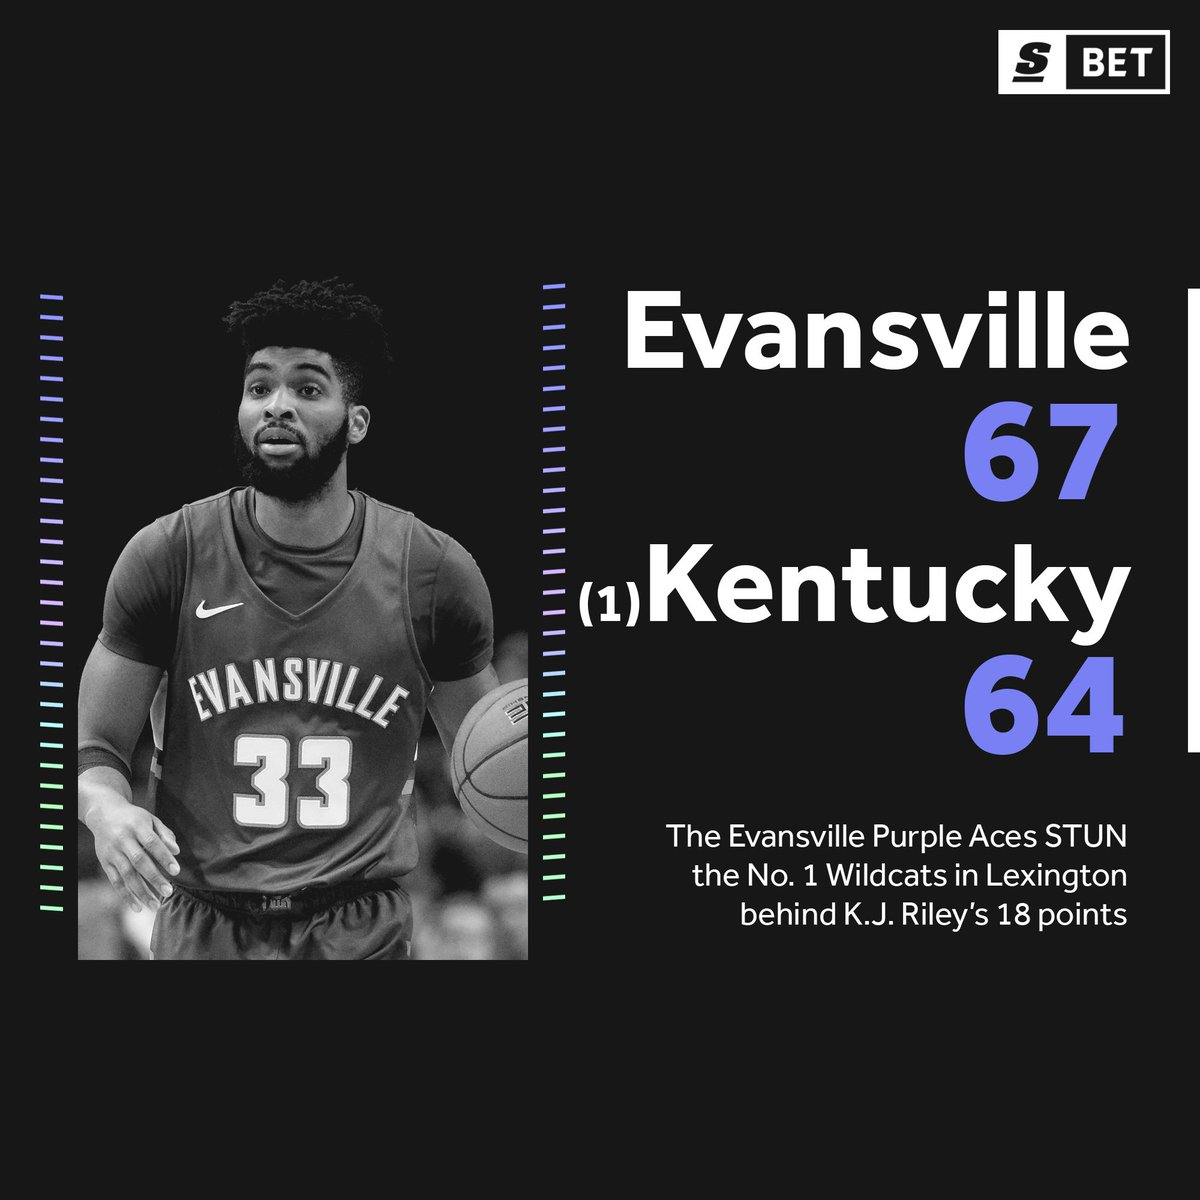 WHAT AN UPSET! Evansville takes down Kentucky as 25-point underdogs. 😳🔥